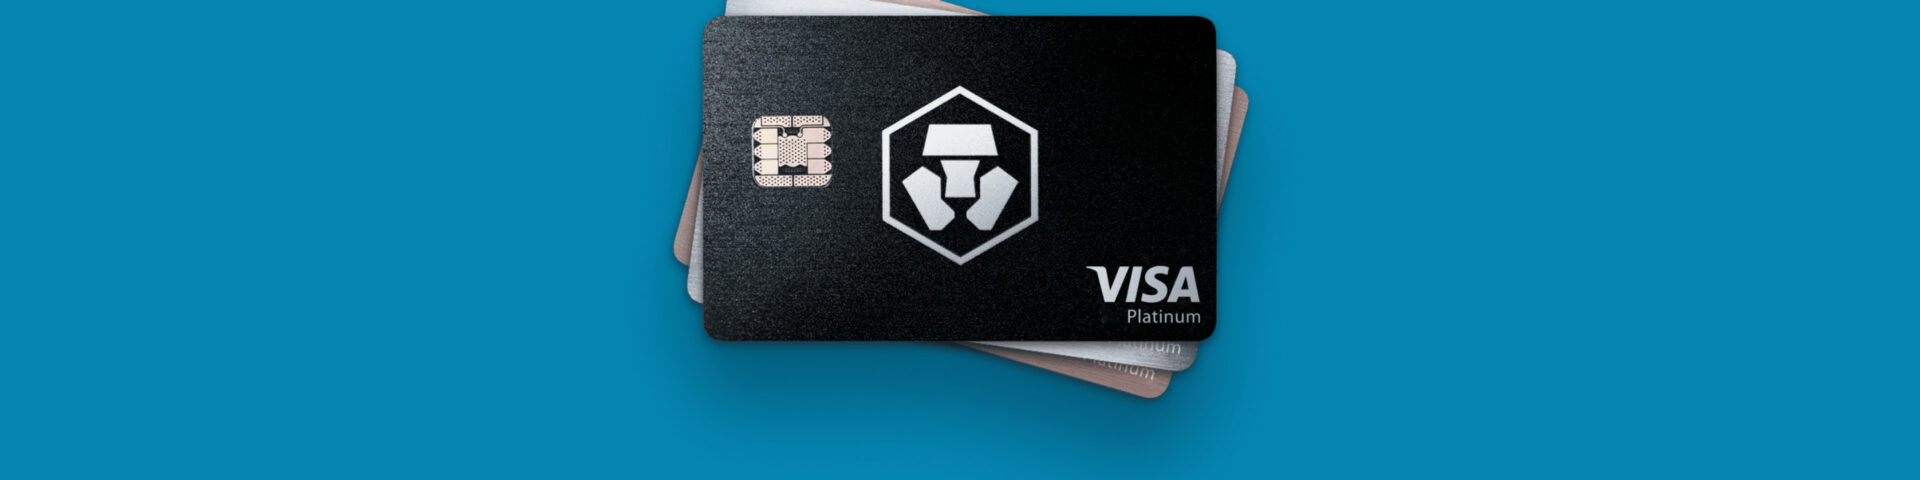 Crypto.com   The best card for cryptocurrencies and cashback